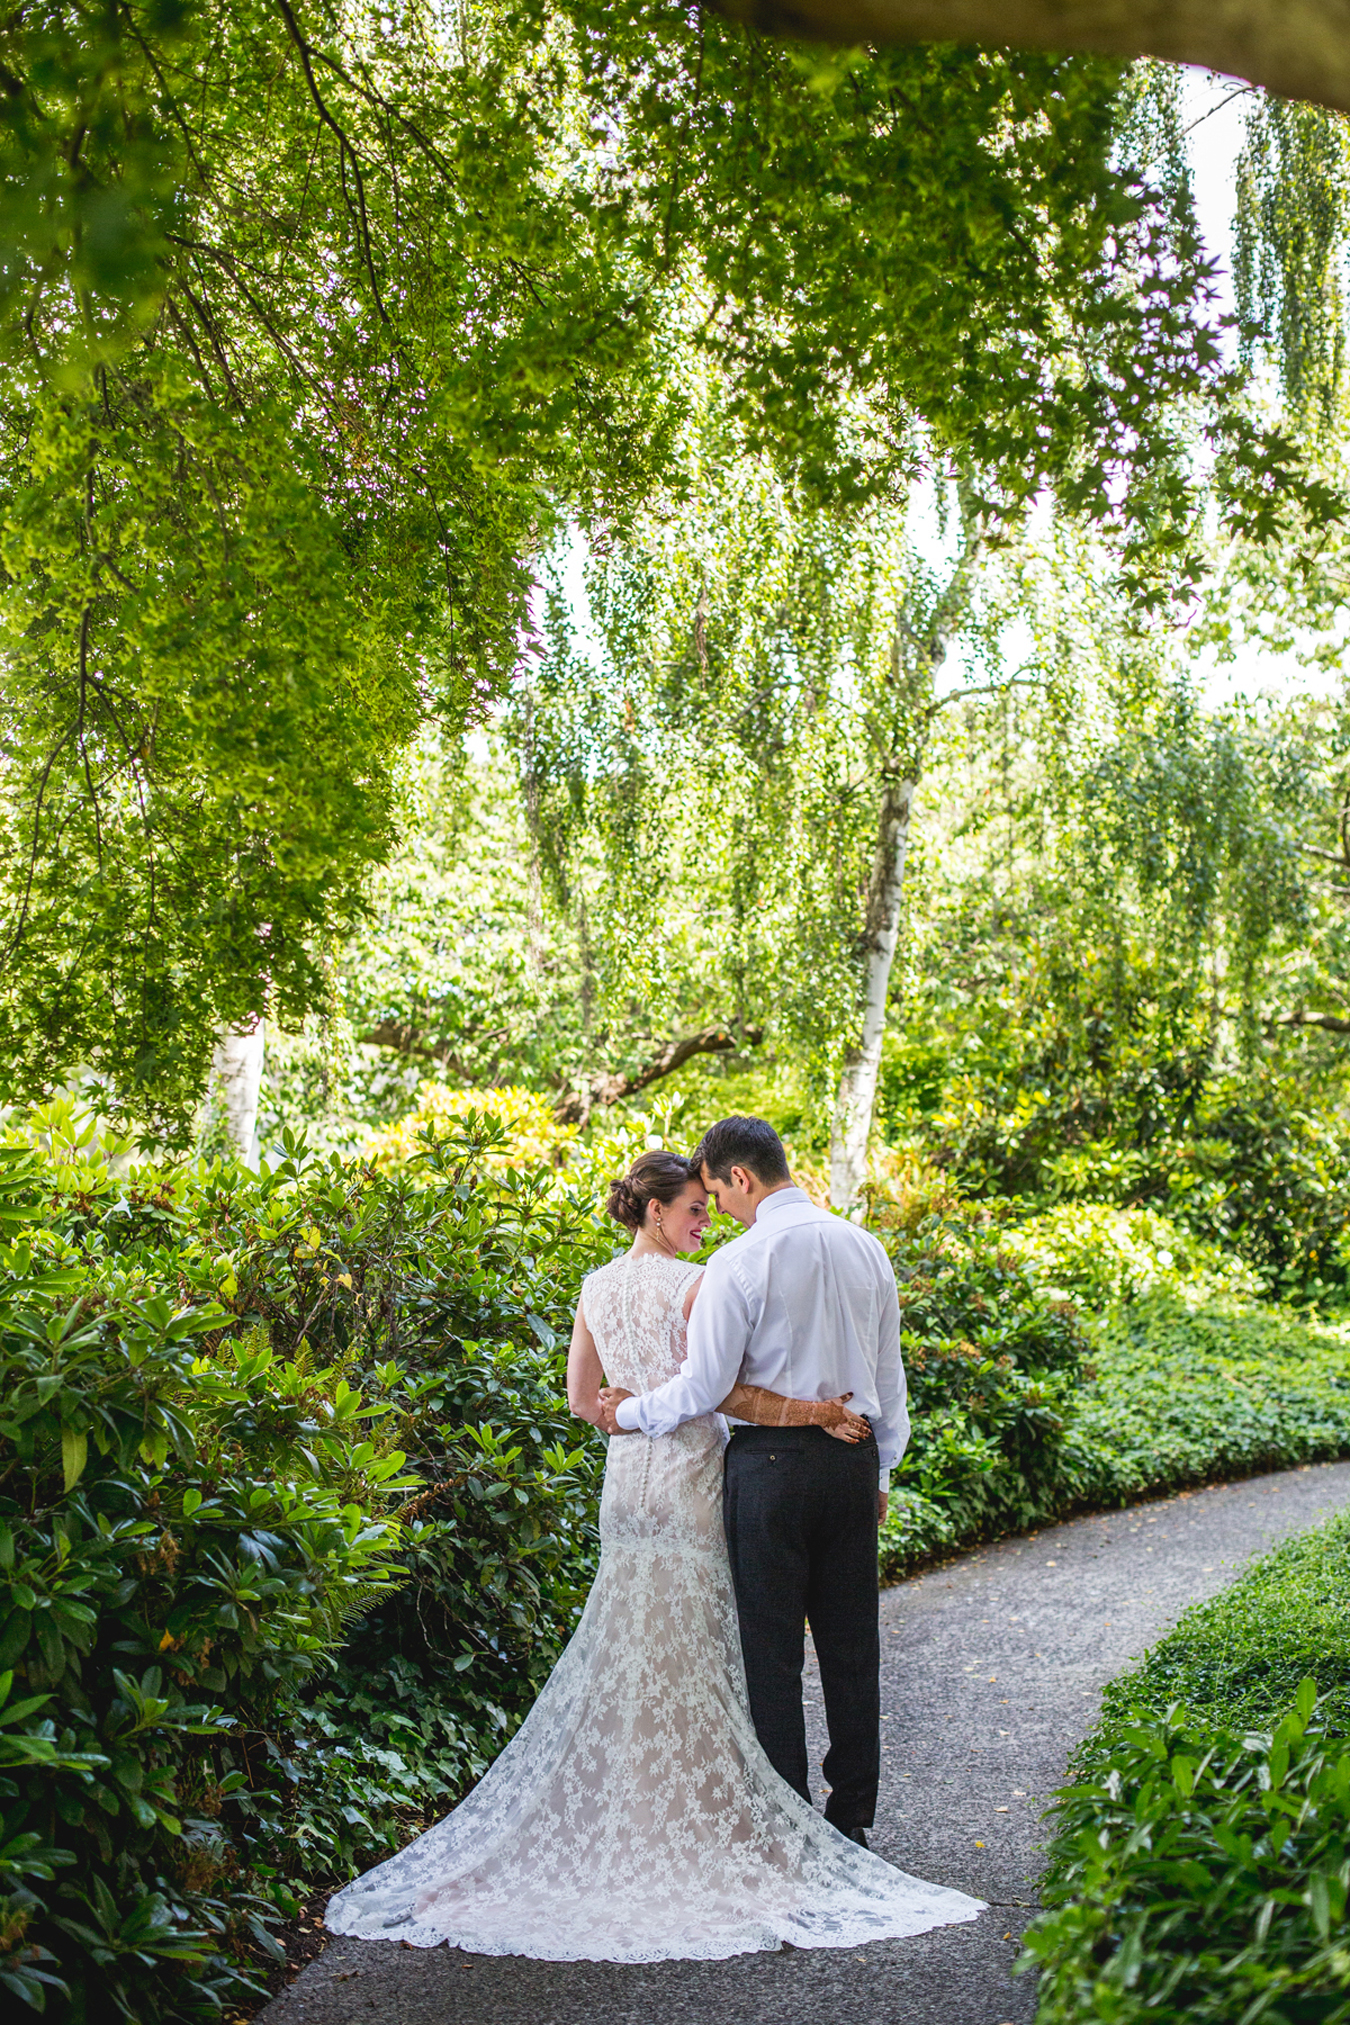 A wedding portrait at the gardens outside of the Museum of Vancouver